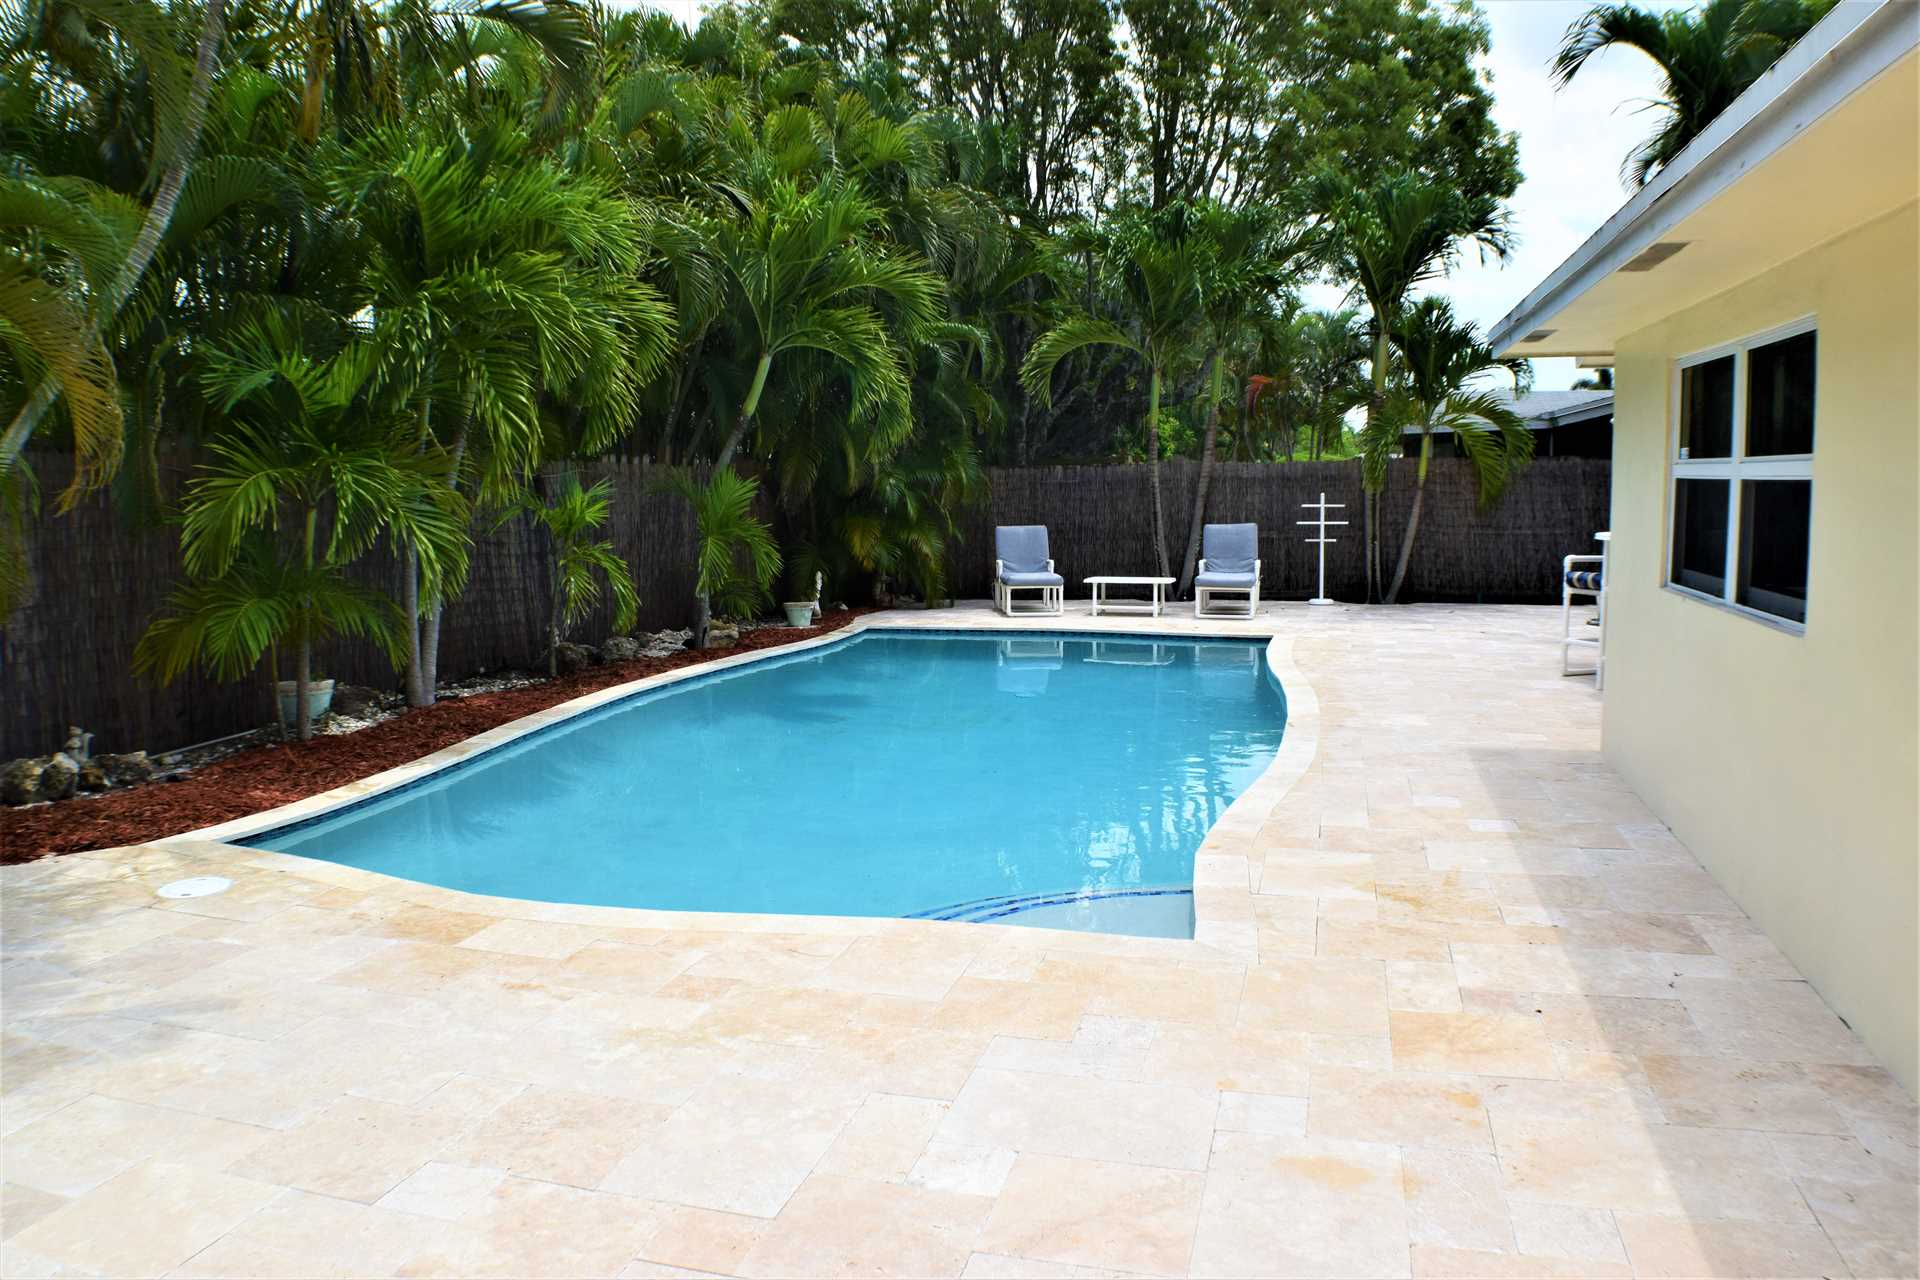 Pool and deck are enclosed with six foot privacy fence.